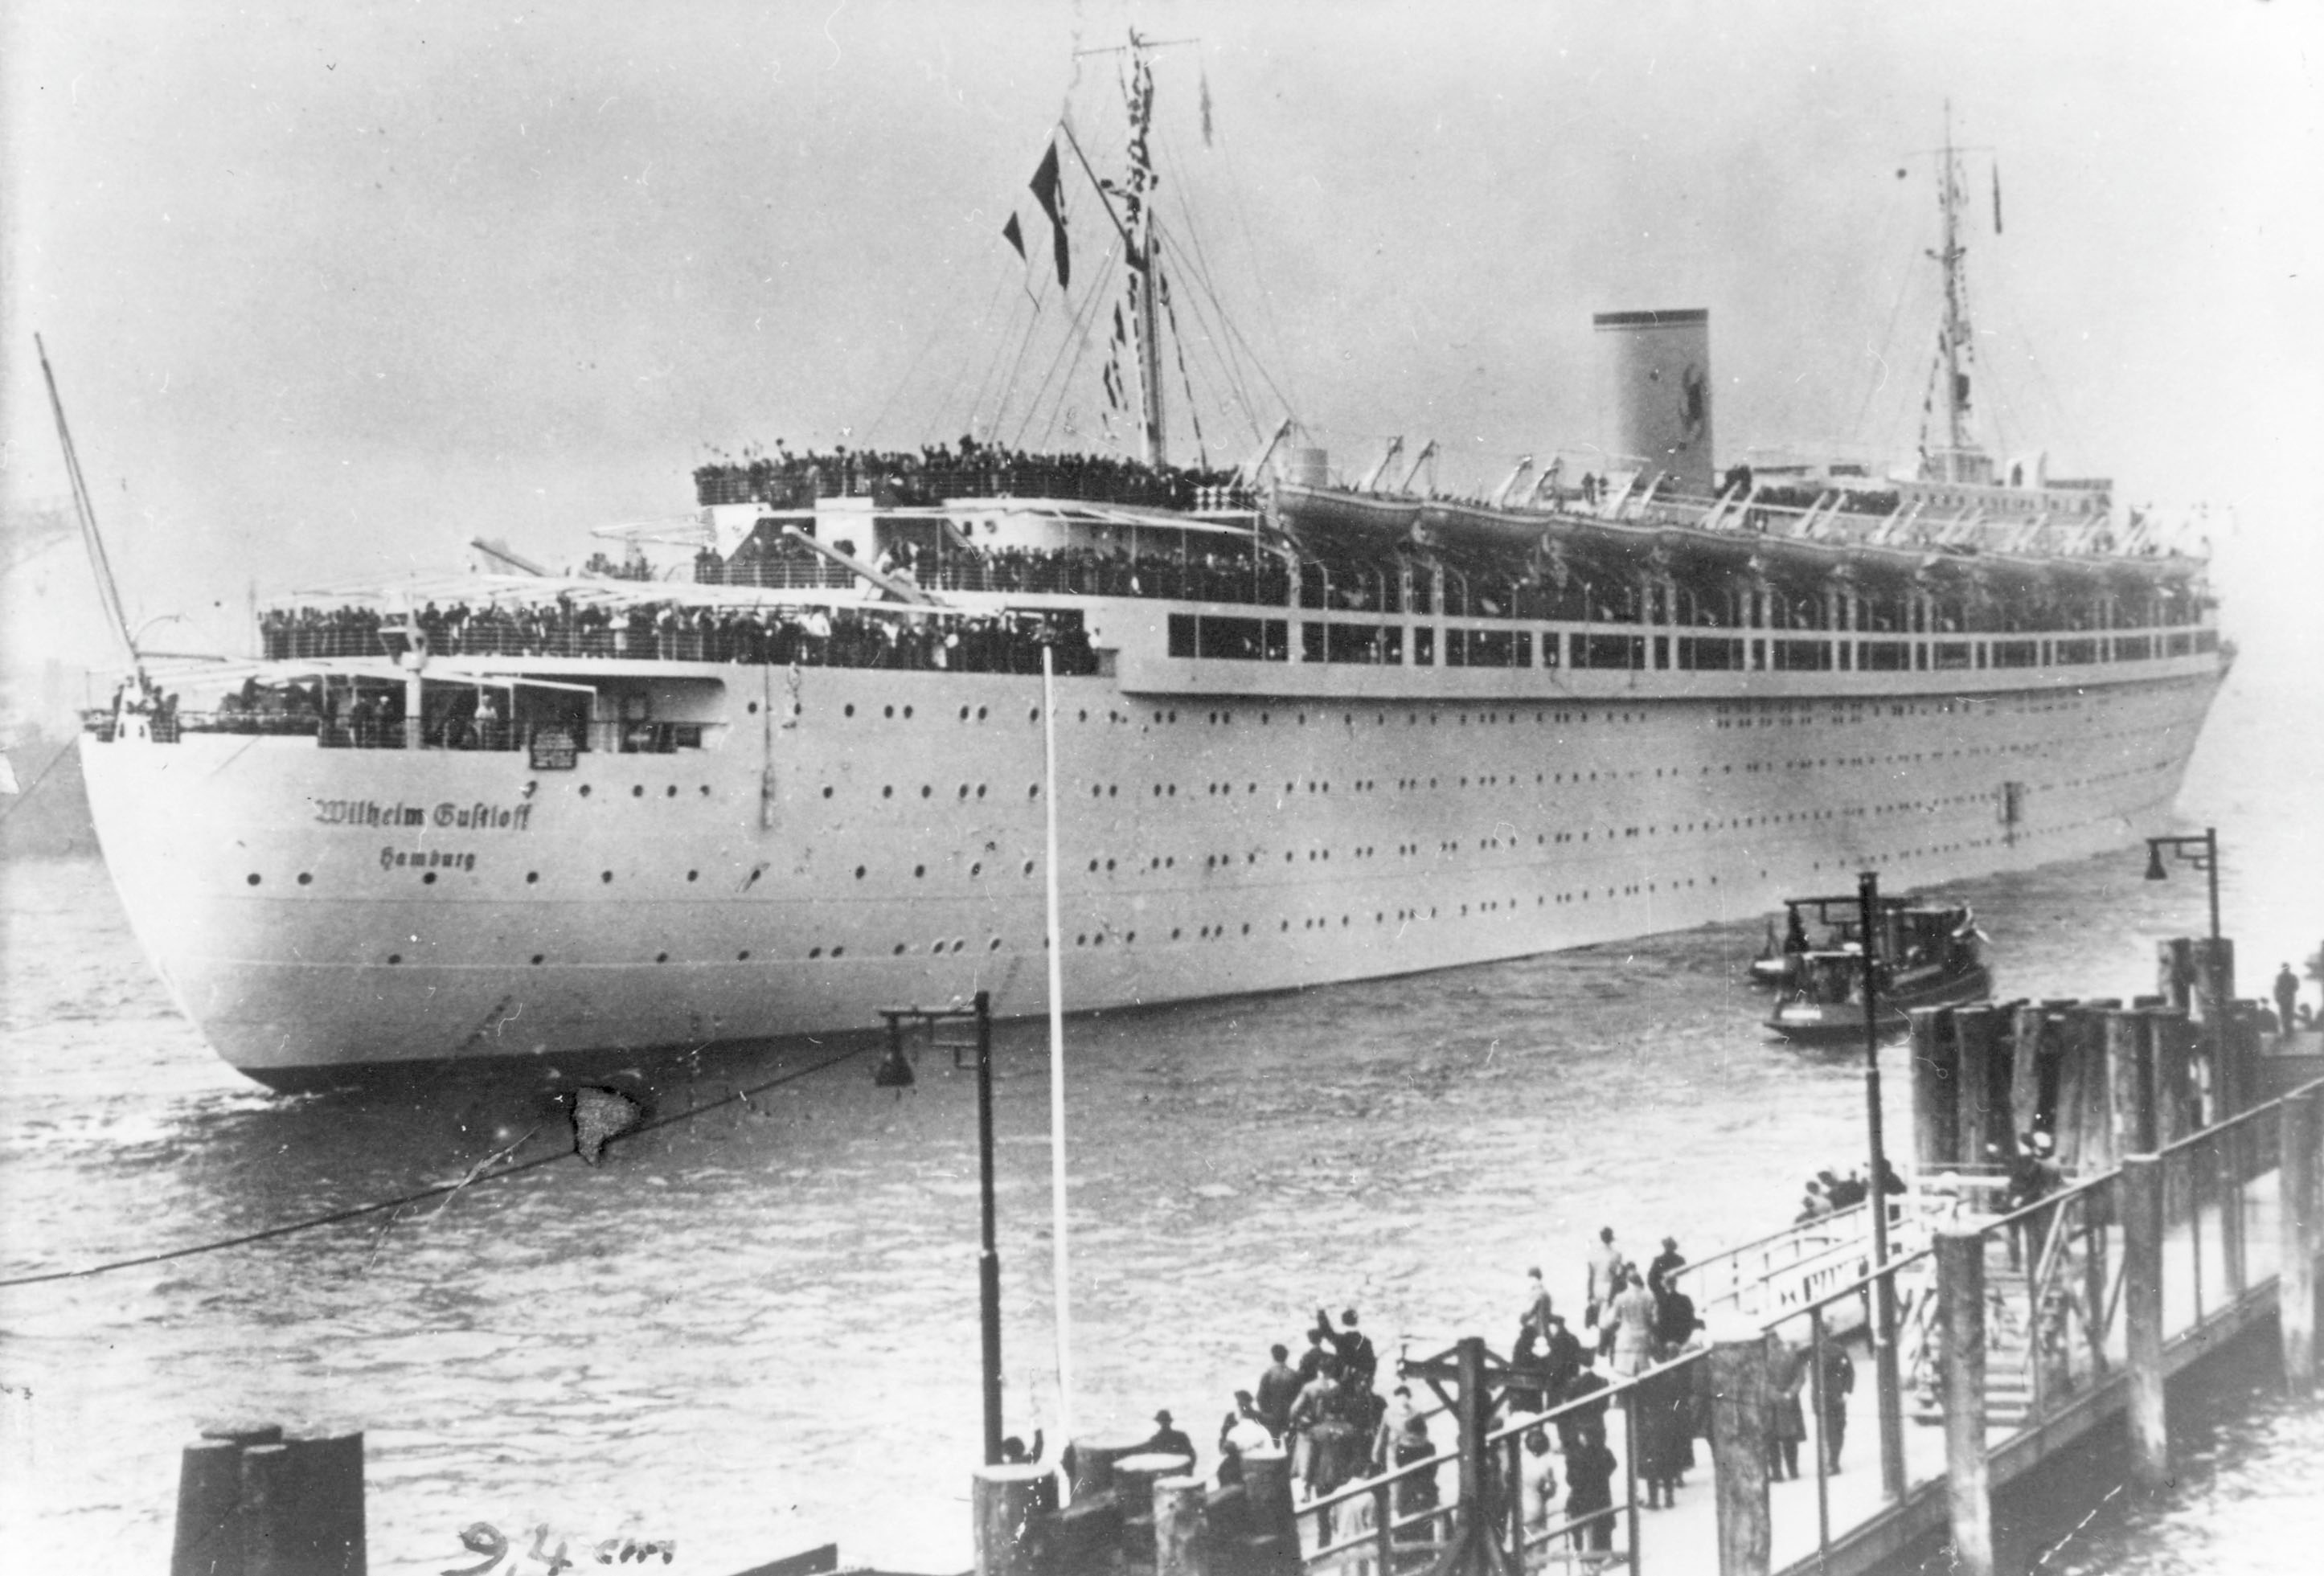 The Wilhelm Gustloff in 1938